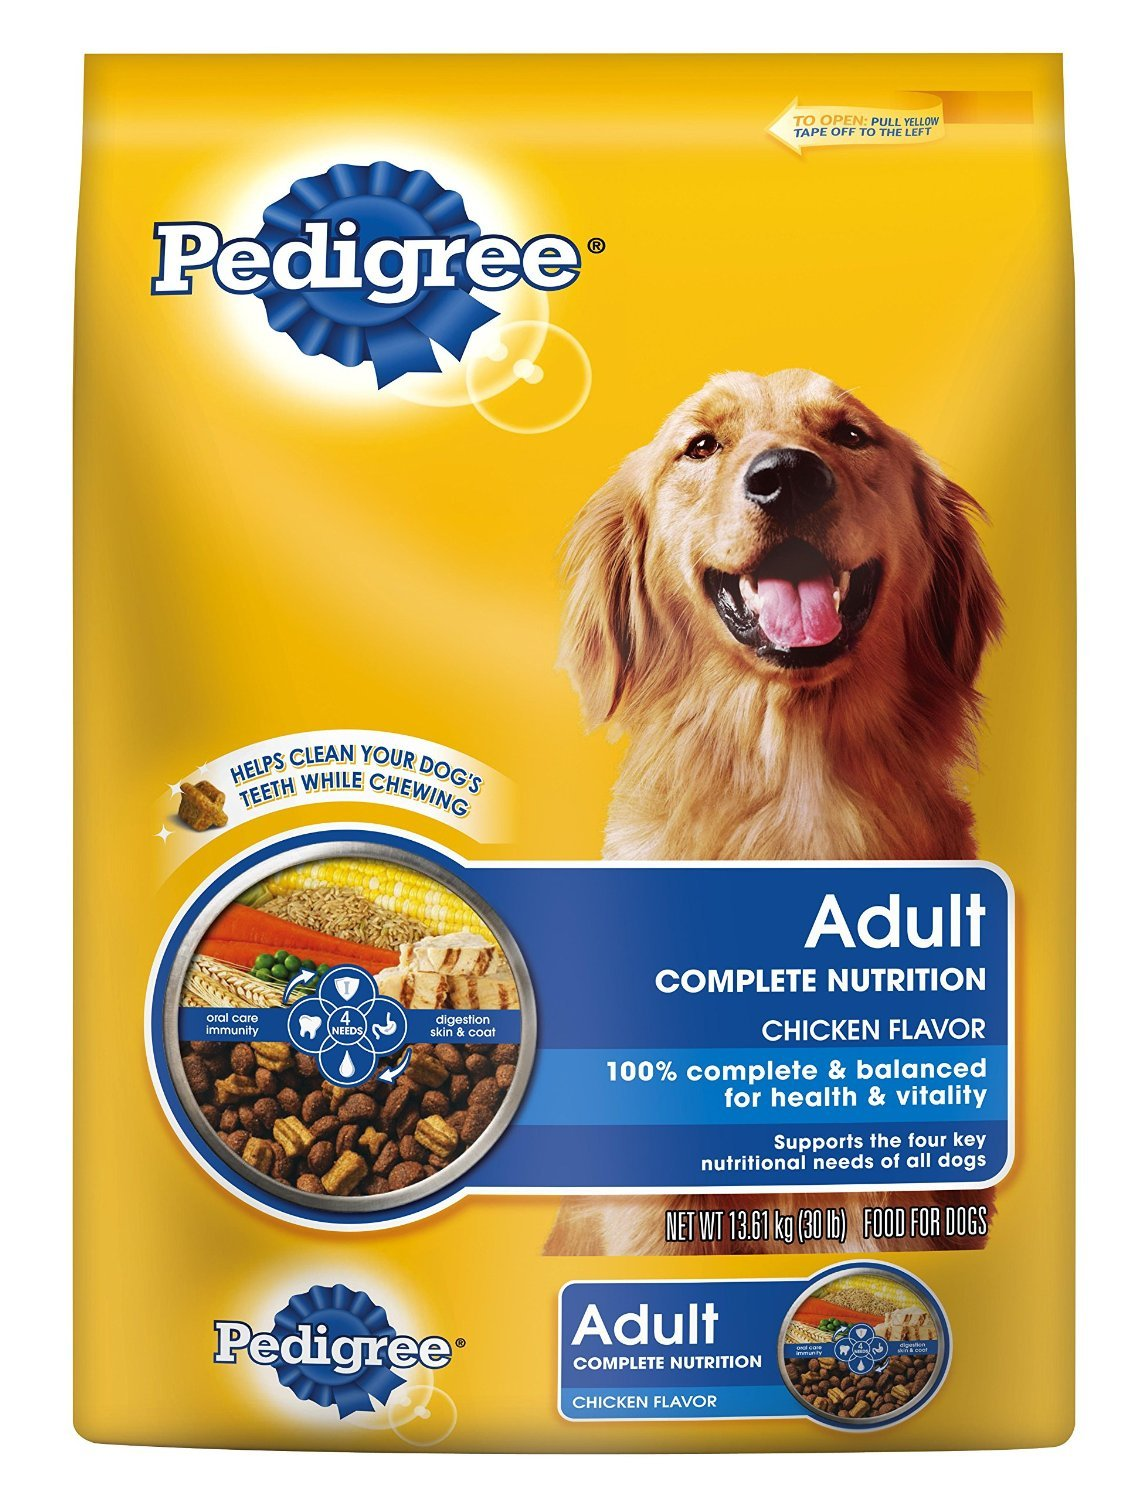 Natural Dry Dog Food Brands